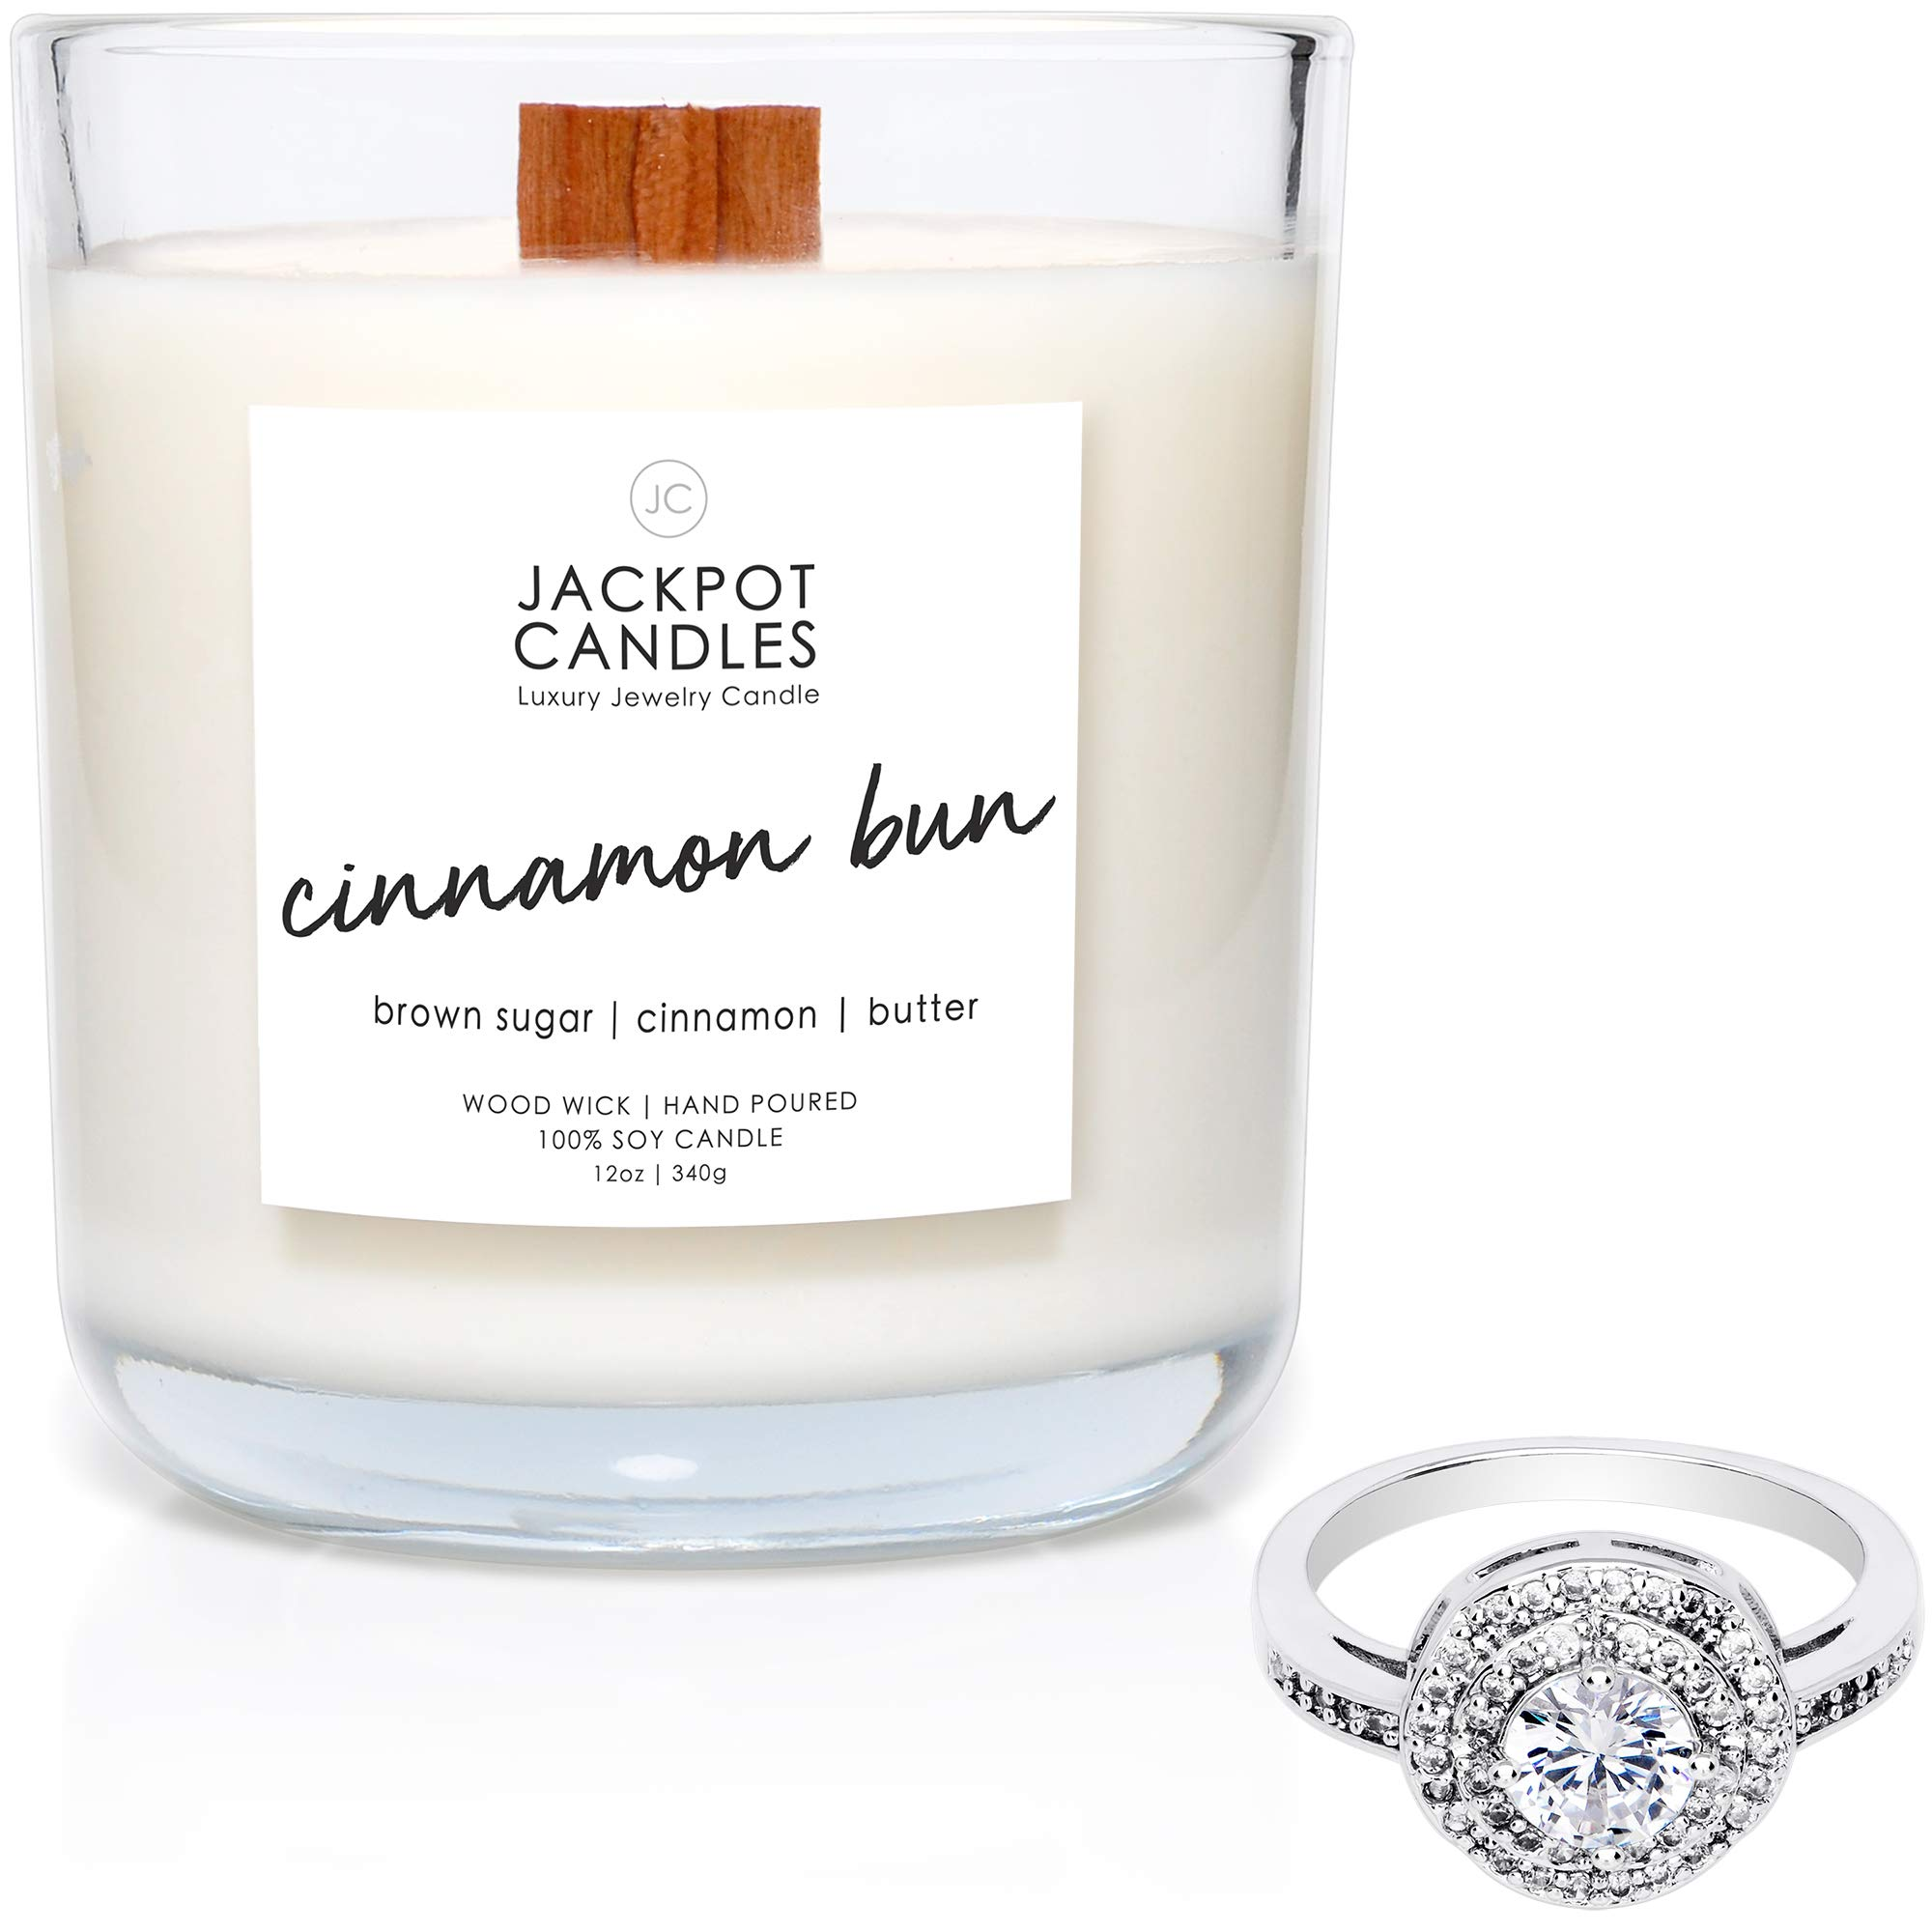 Jackpot Candles Cinnamon Bun Candle with Ring Inside (Surprise Jewelry Valued at $15 to $5,000) Surprise Ring Size